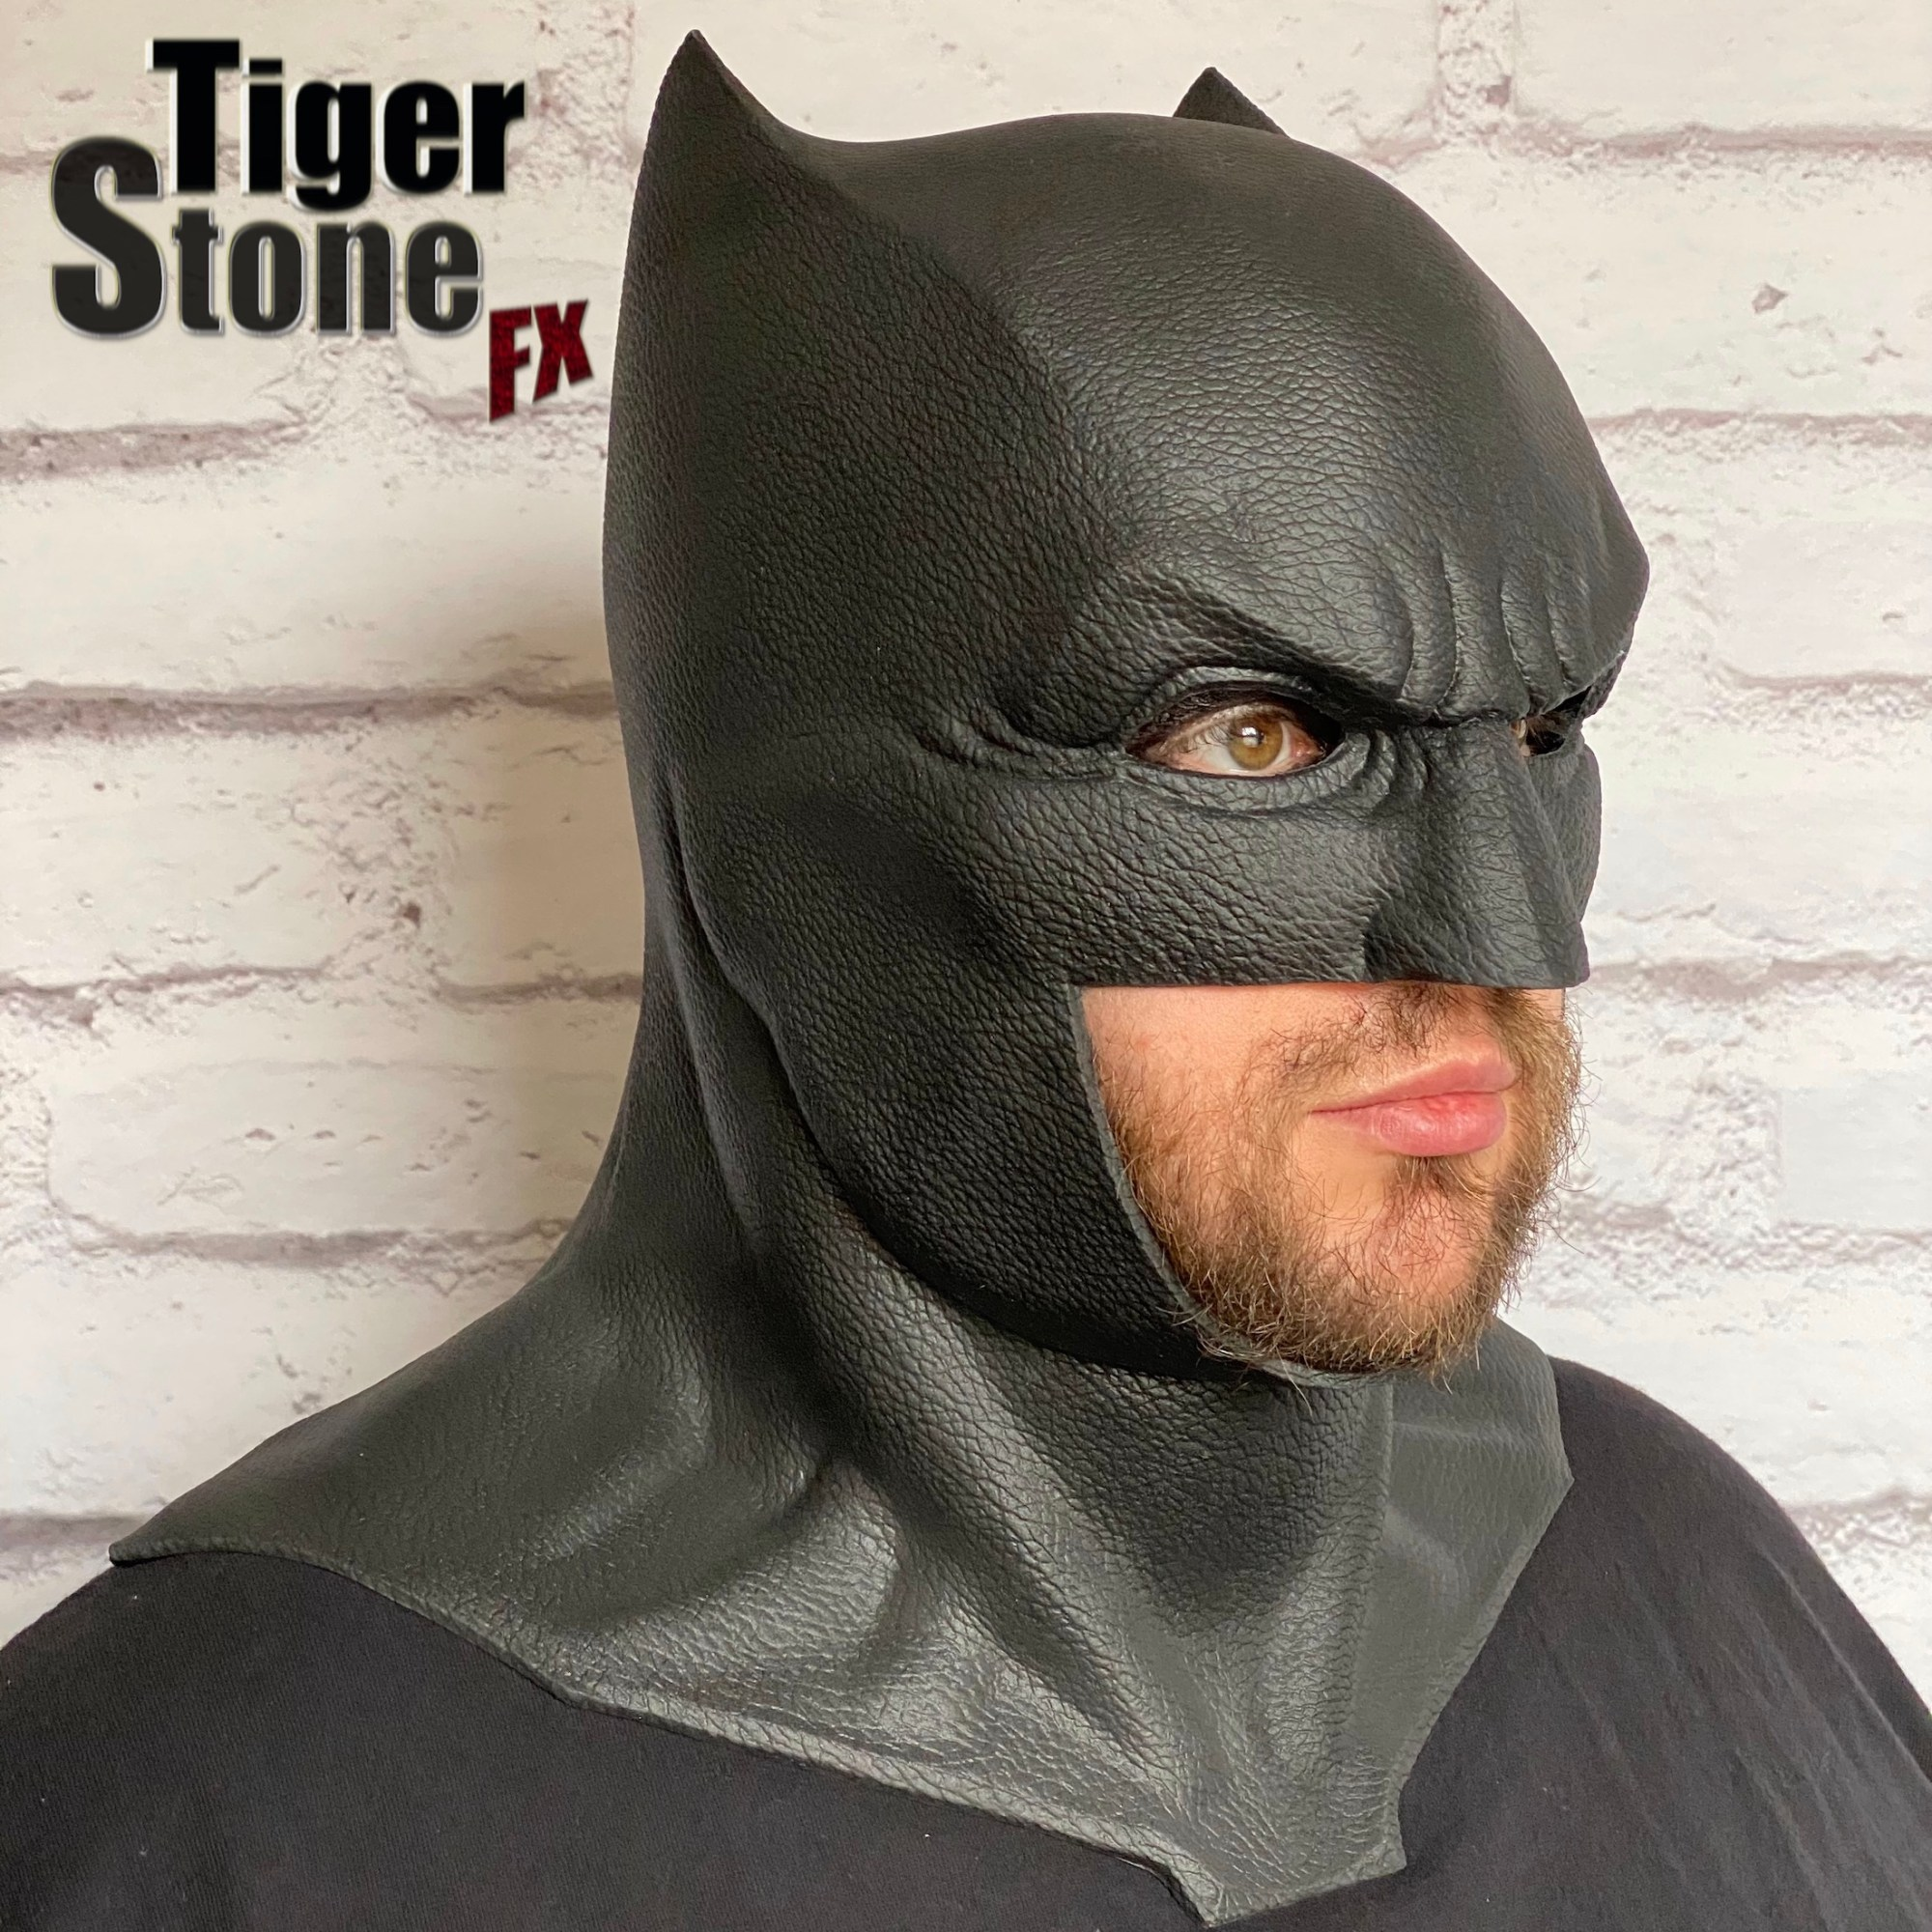 Justice League Batman cowl (worn by Nat) - handmade by Tiger Stone FX